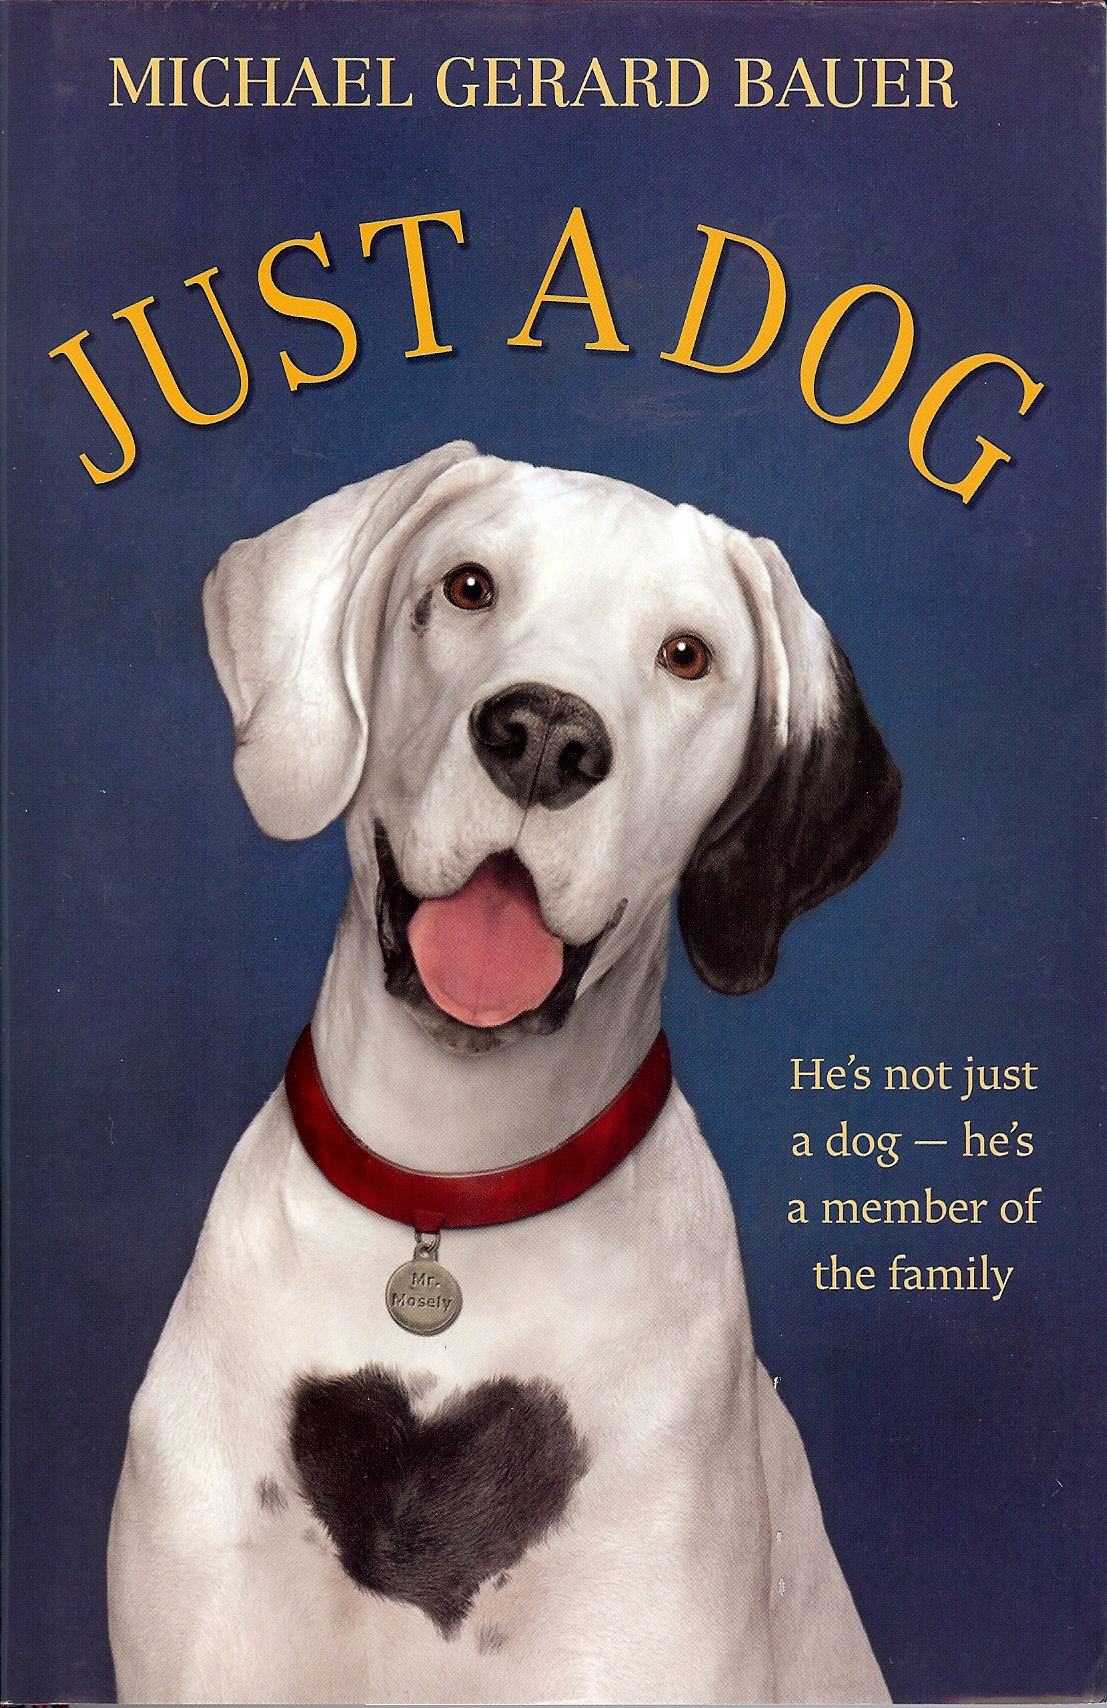 just a dog | michael gerard bauer – author